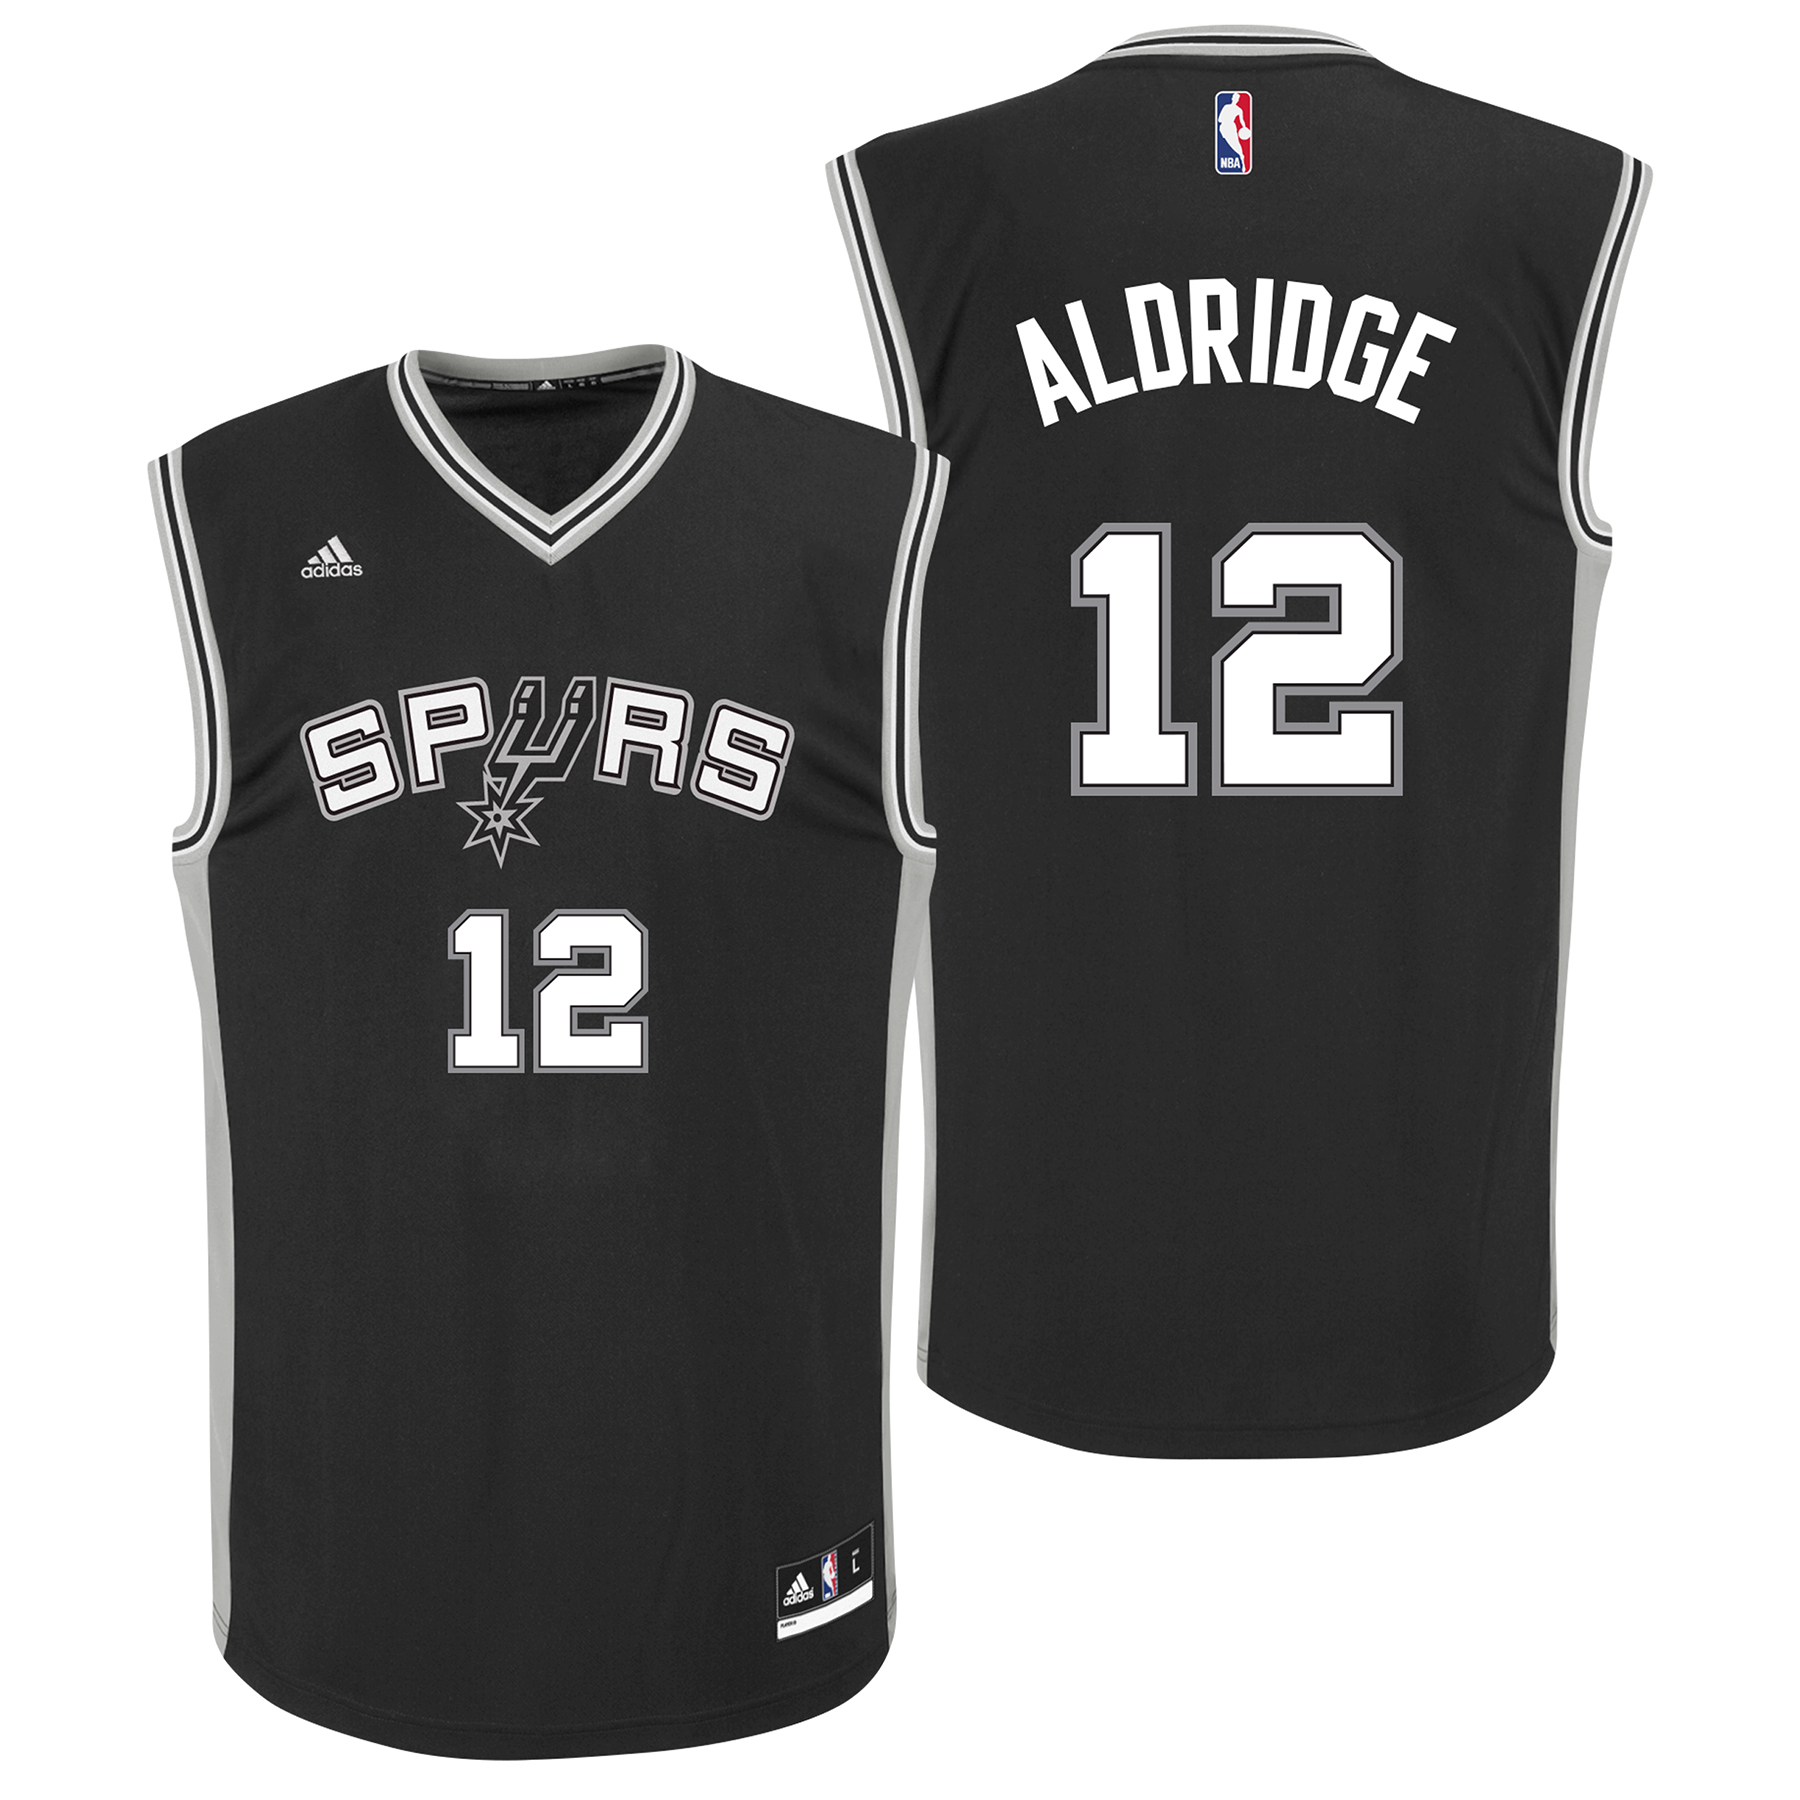 San Antonio Spurs Road Replica Jersey - LaMarcus Aldridge - Mens